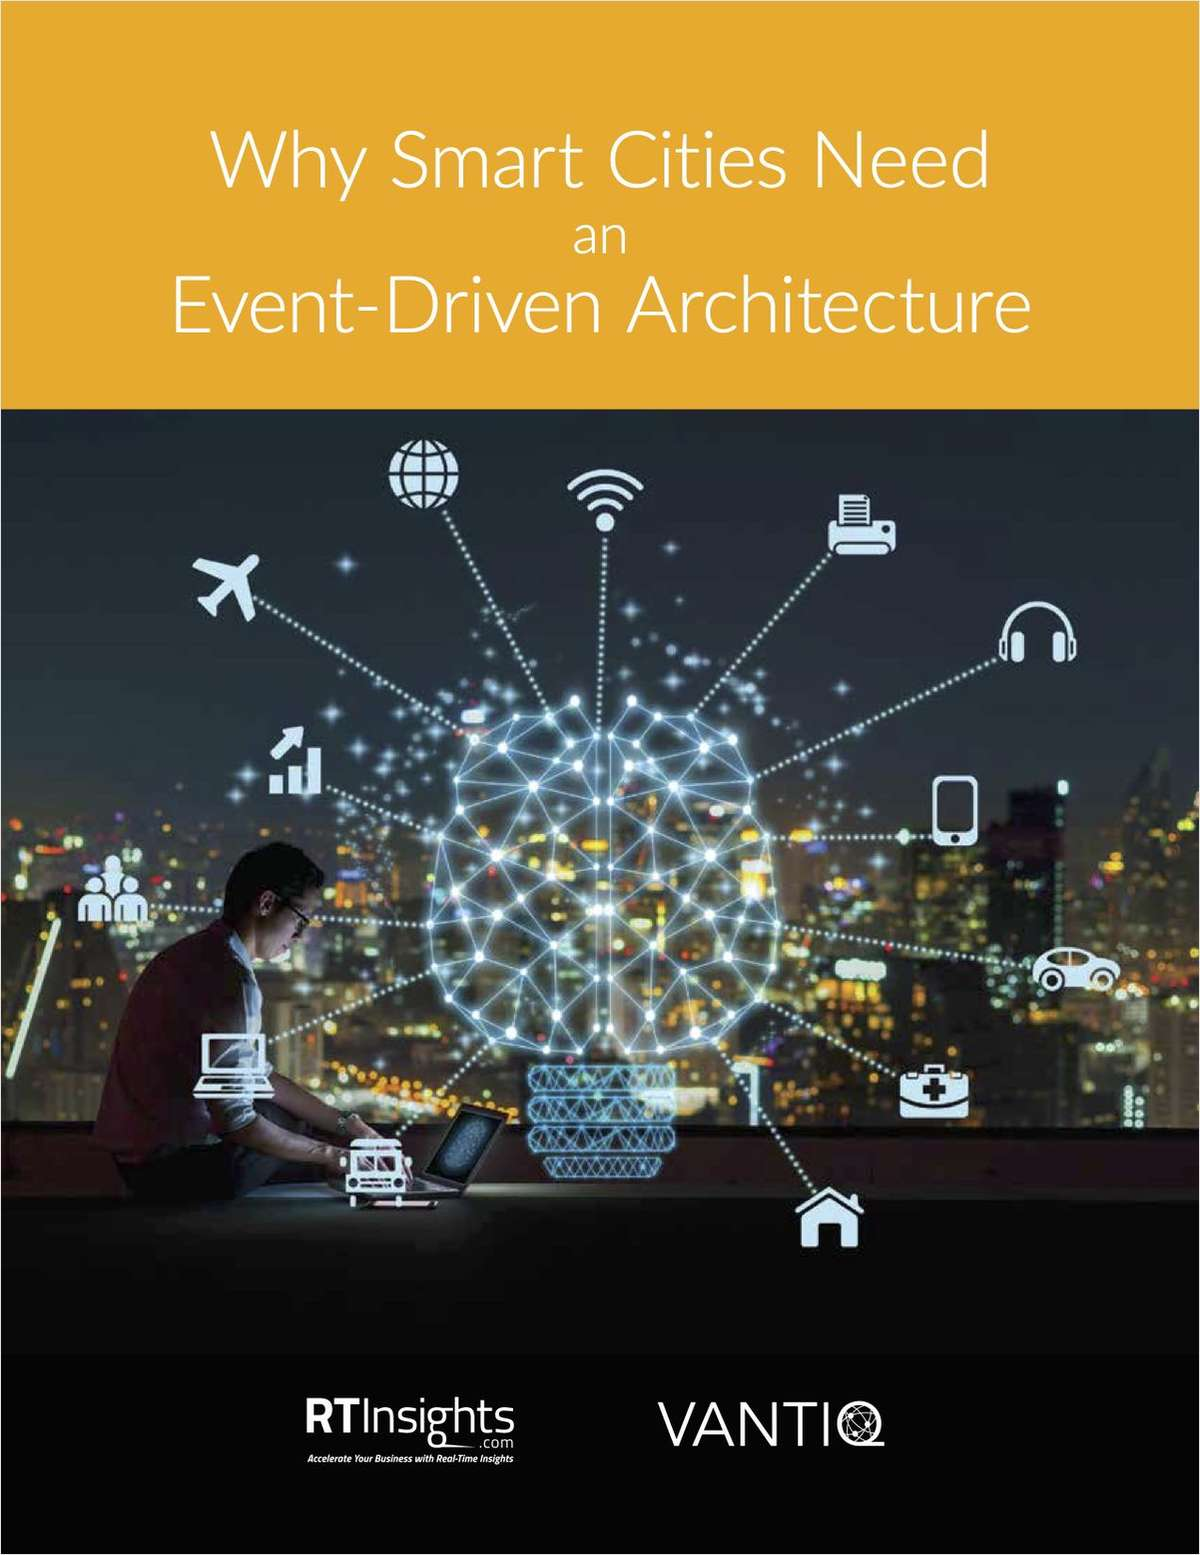 Why Smart Cities Need an Event-Driven Architecture